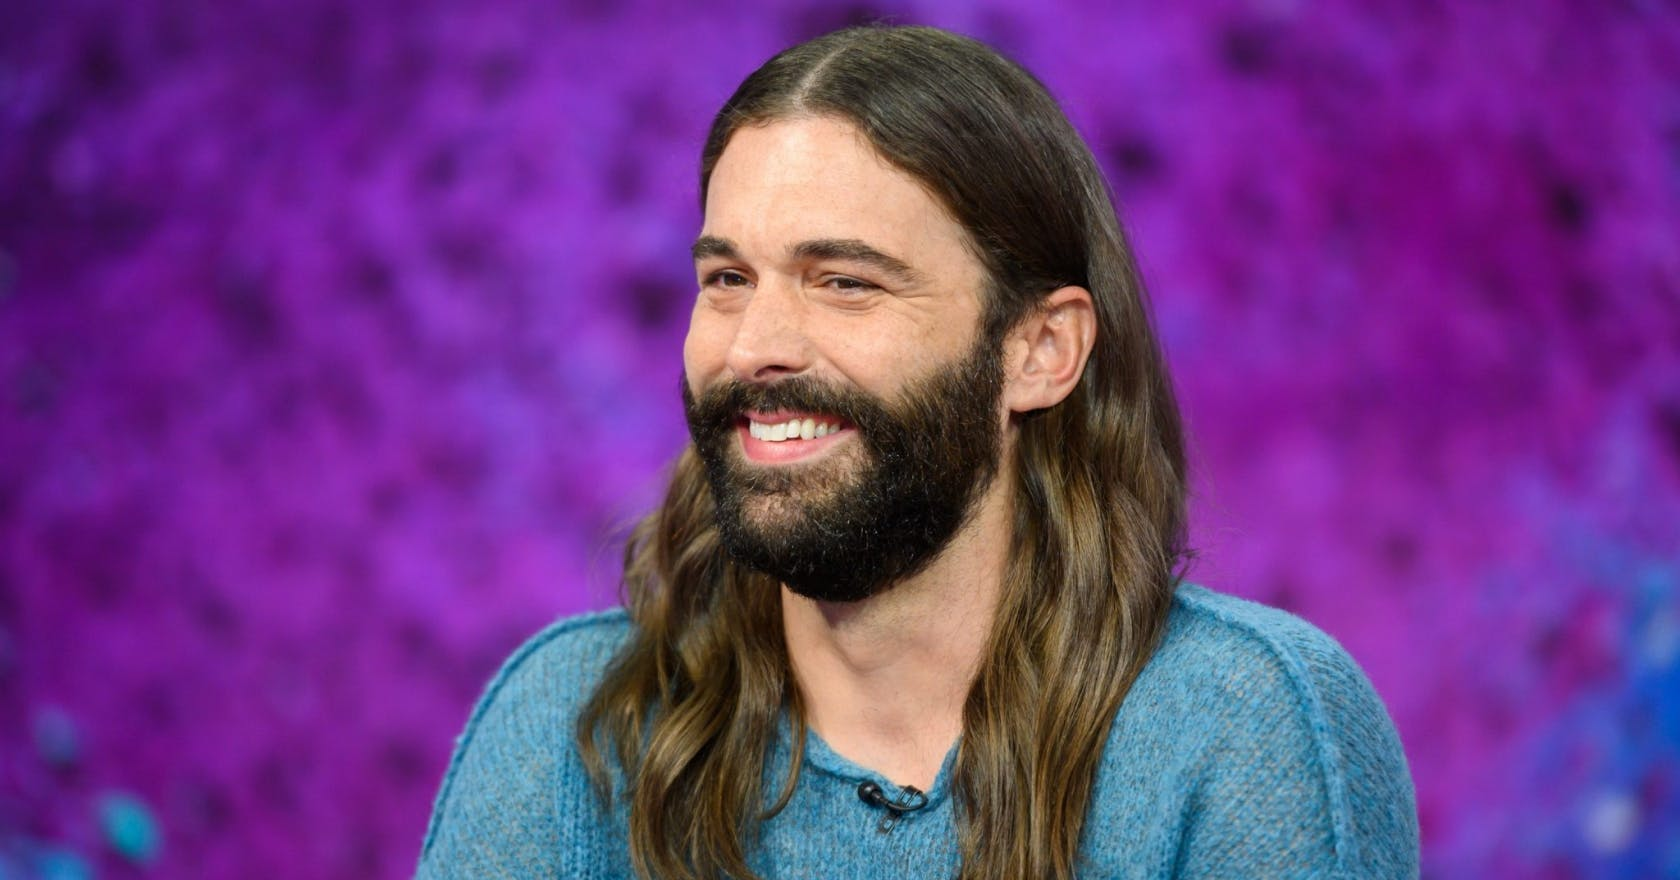 Why Jonathan Van Ness' response to that LGBTQ+ ruling is so important